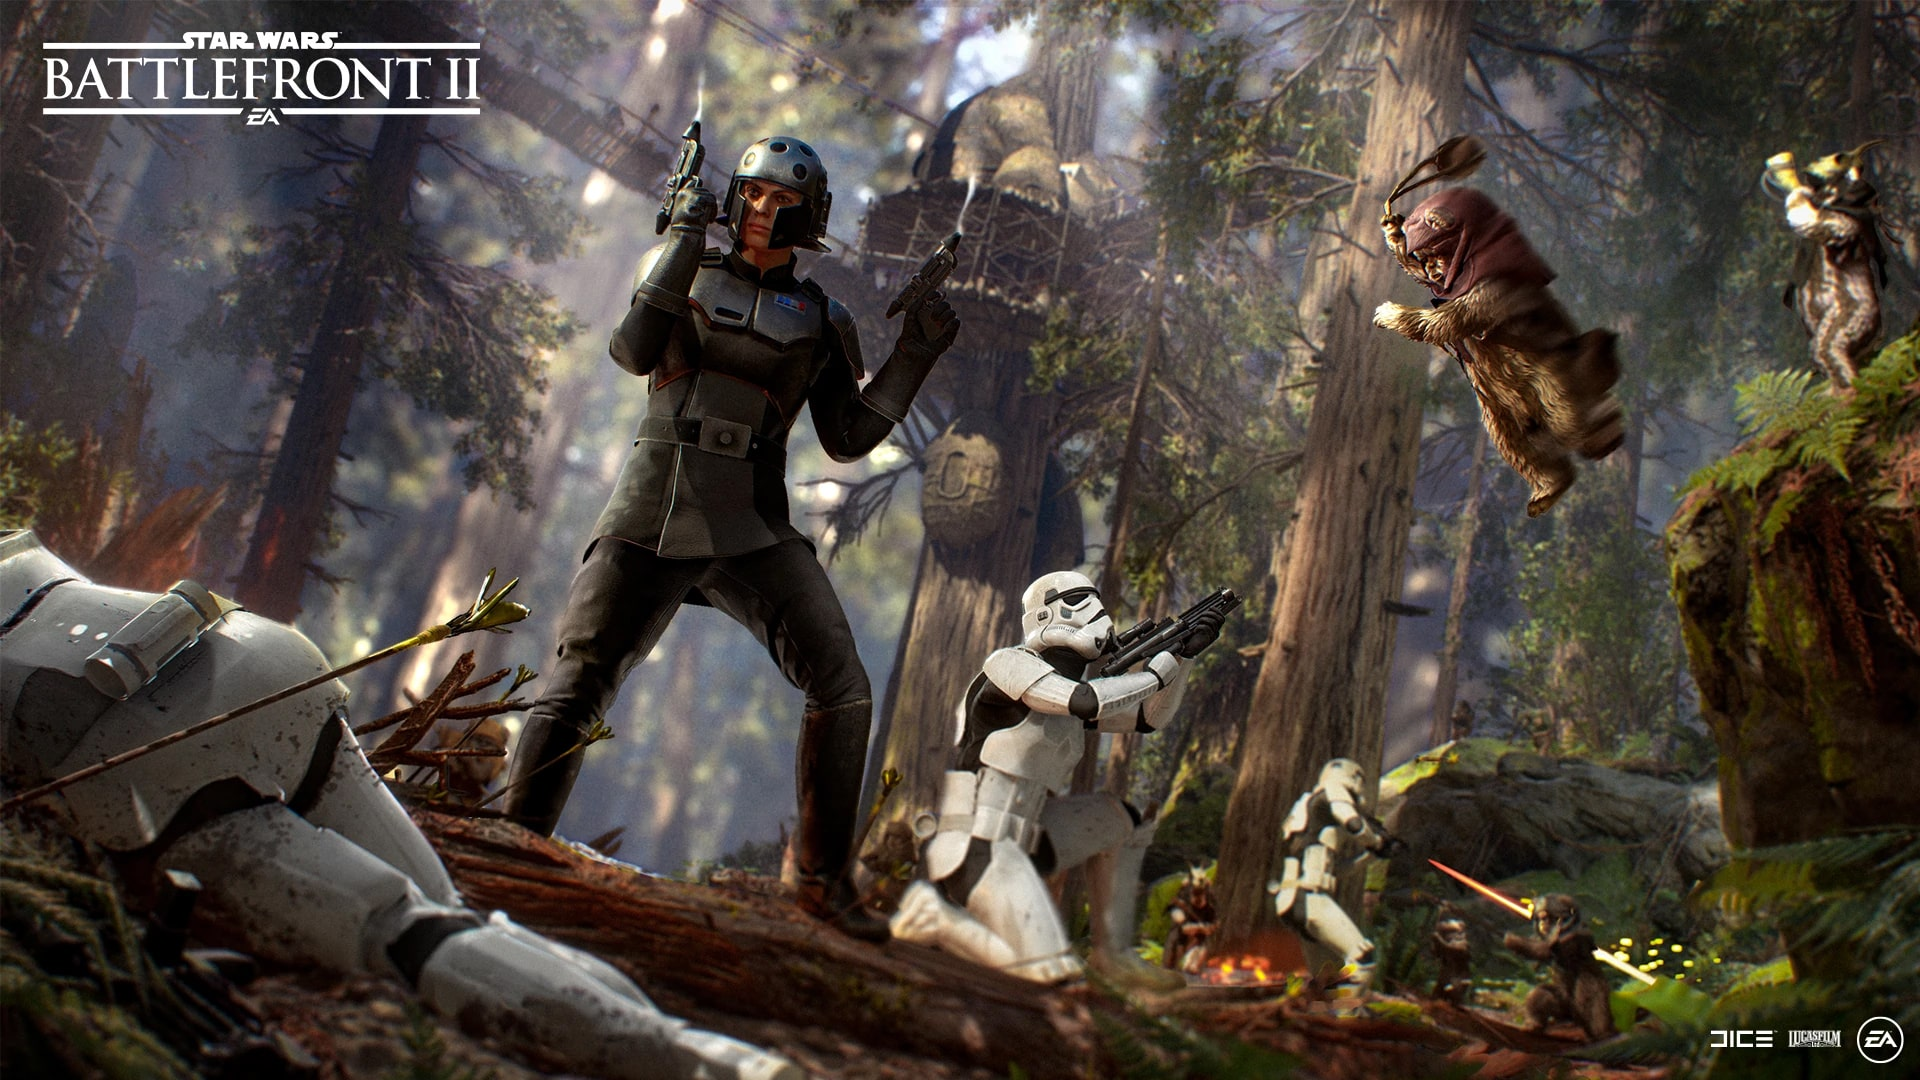 Star Wars Battlefront II The Age of Rebellion update Leia overpowered Ewok Hunter too